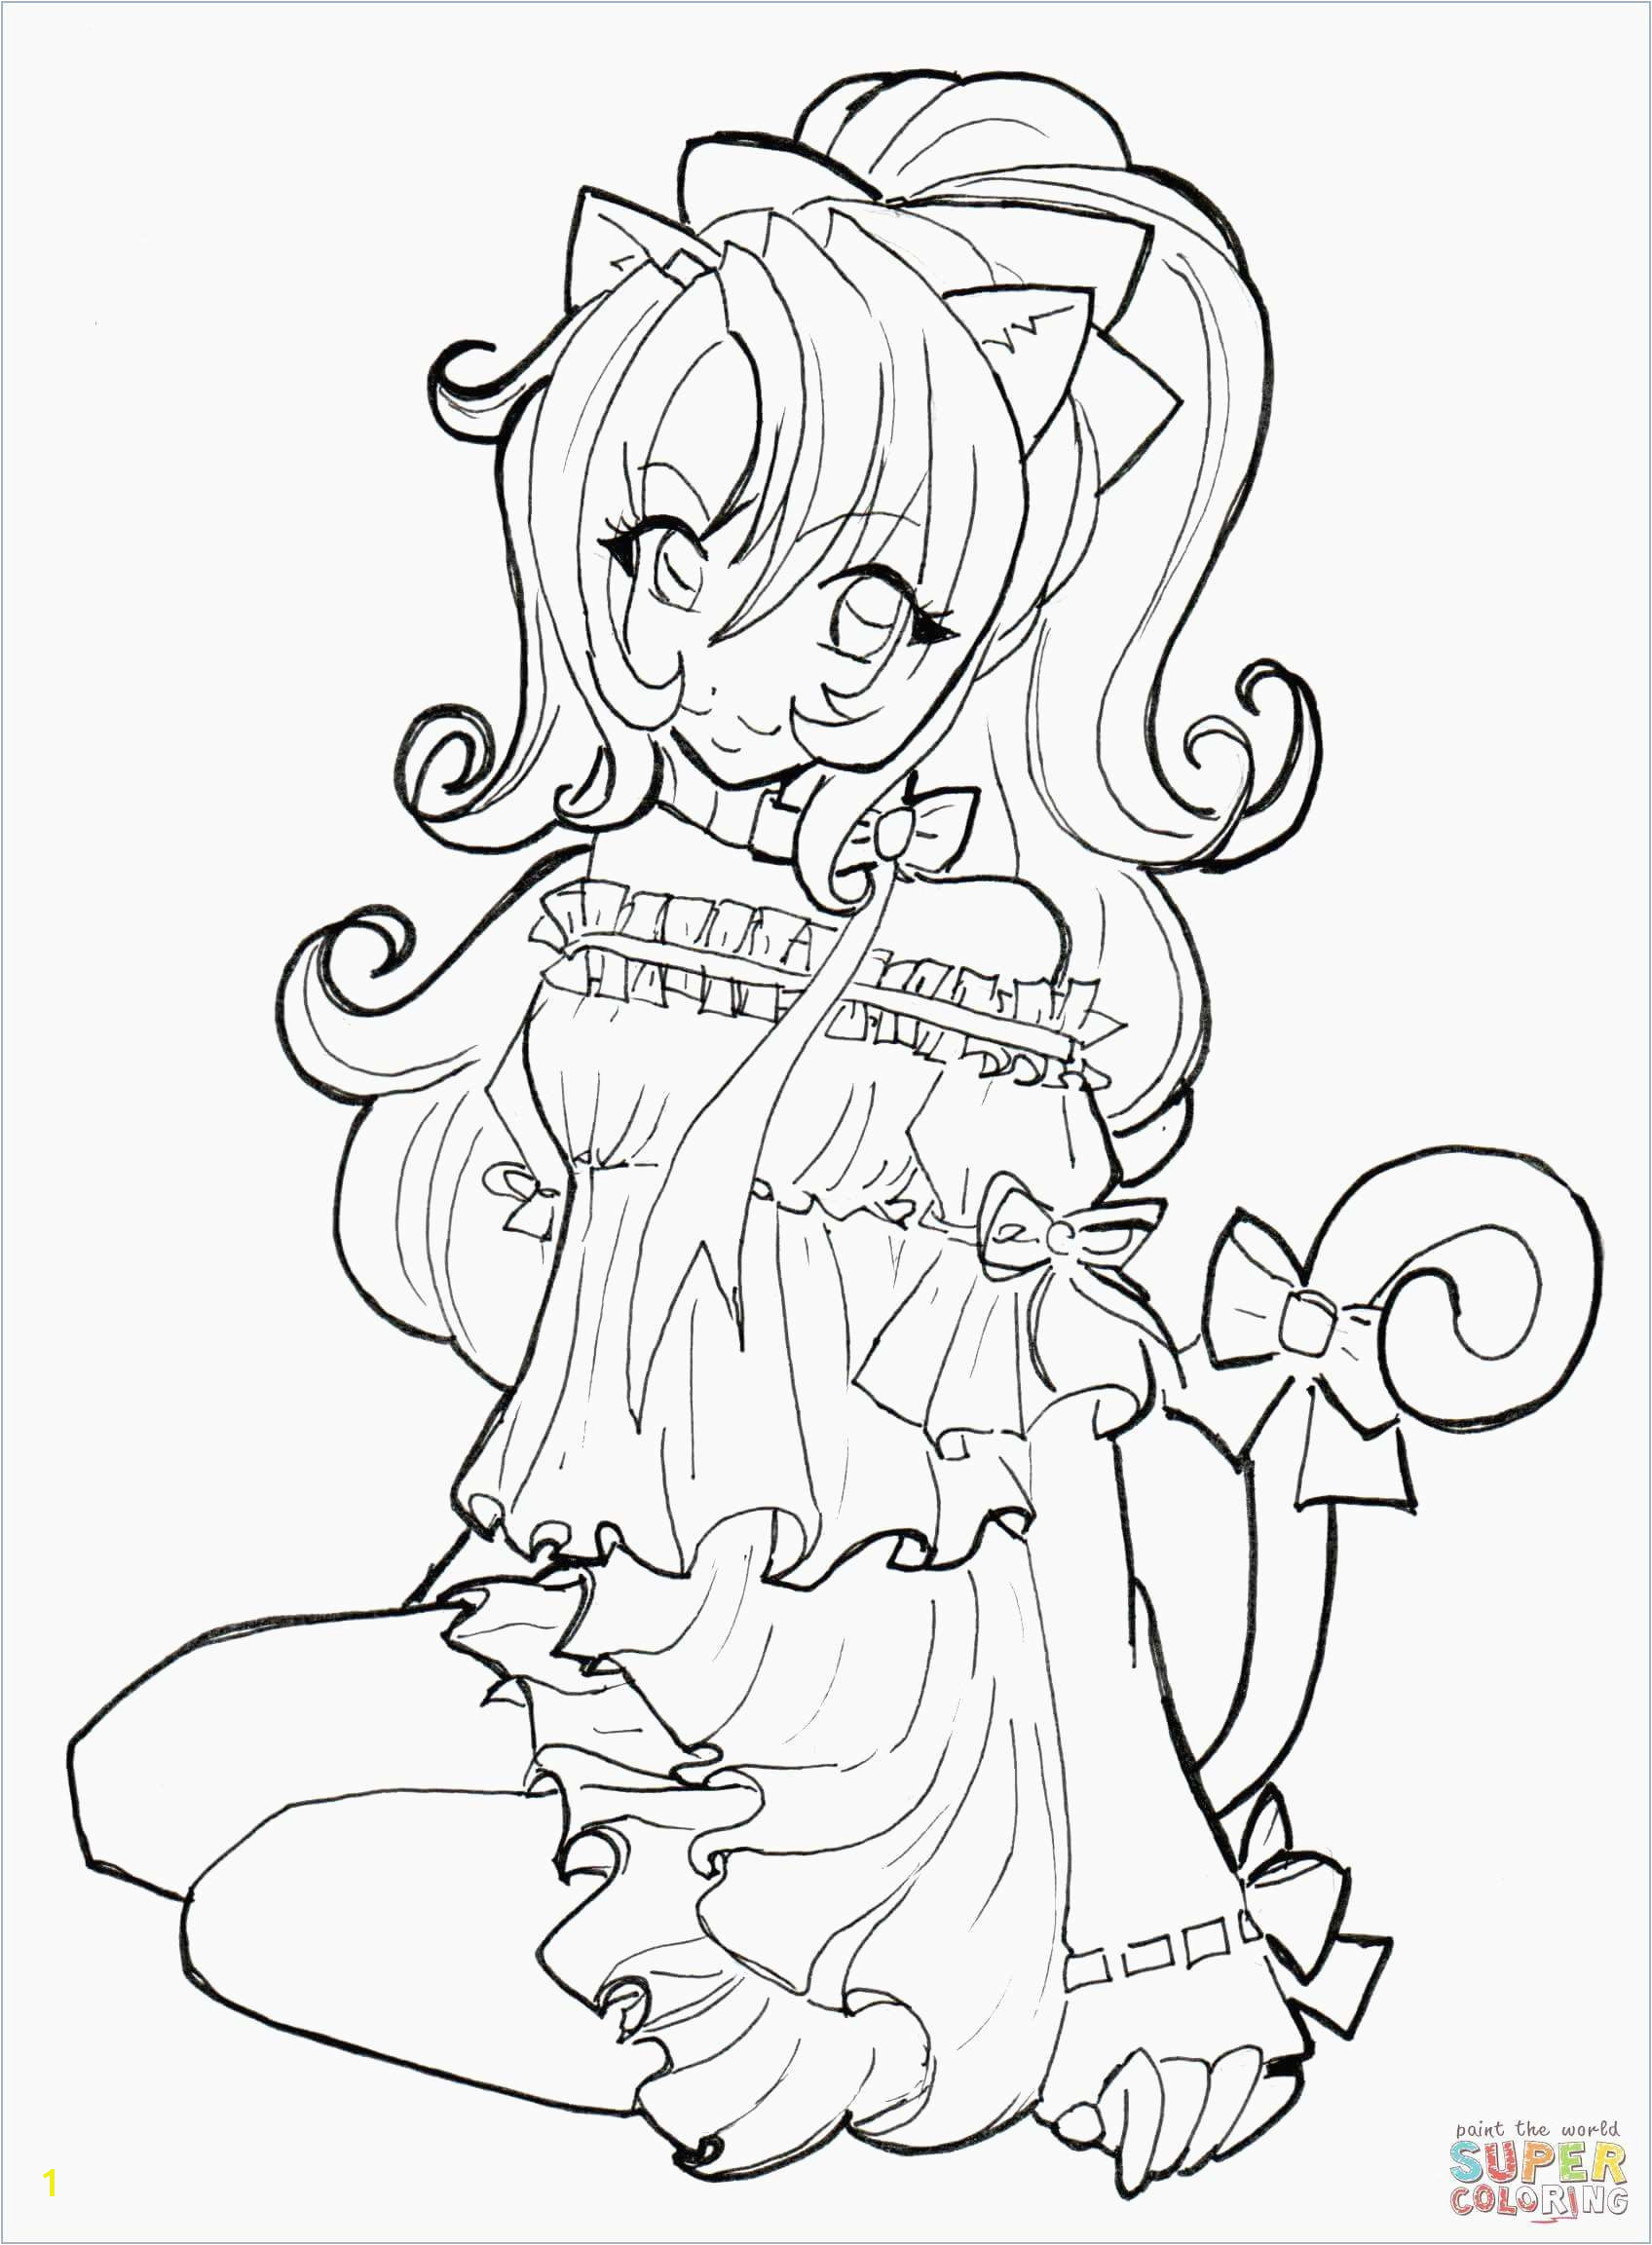 Cool Anime Girl Coloring Pages Cute Coloring Pages Luxury Witch Coloring Page Inspirational Crayola